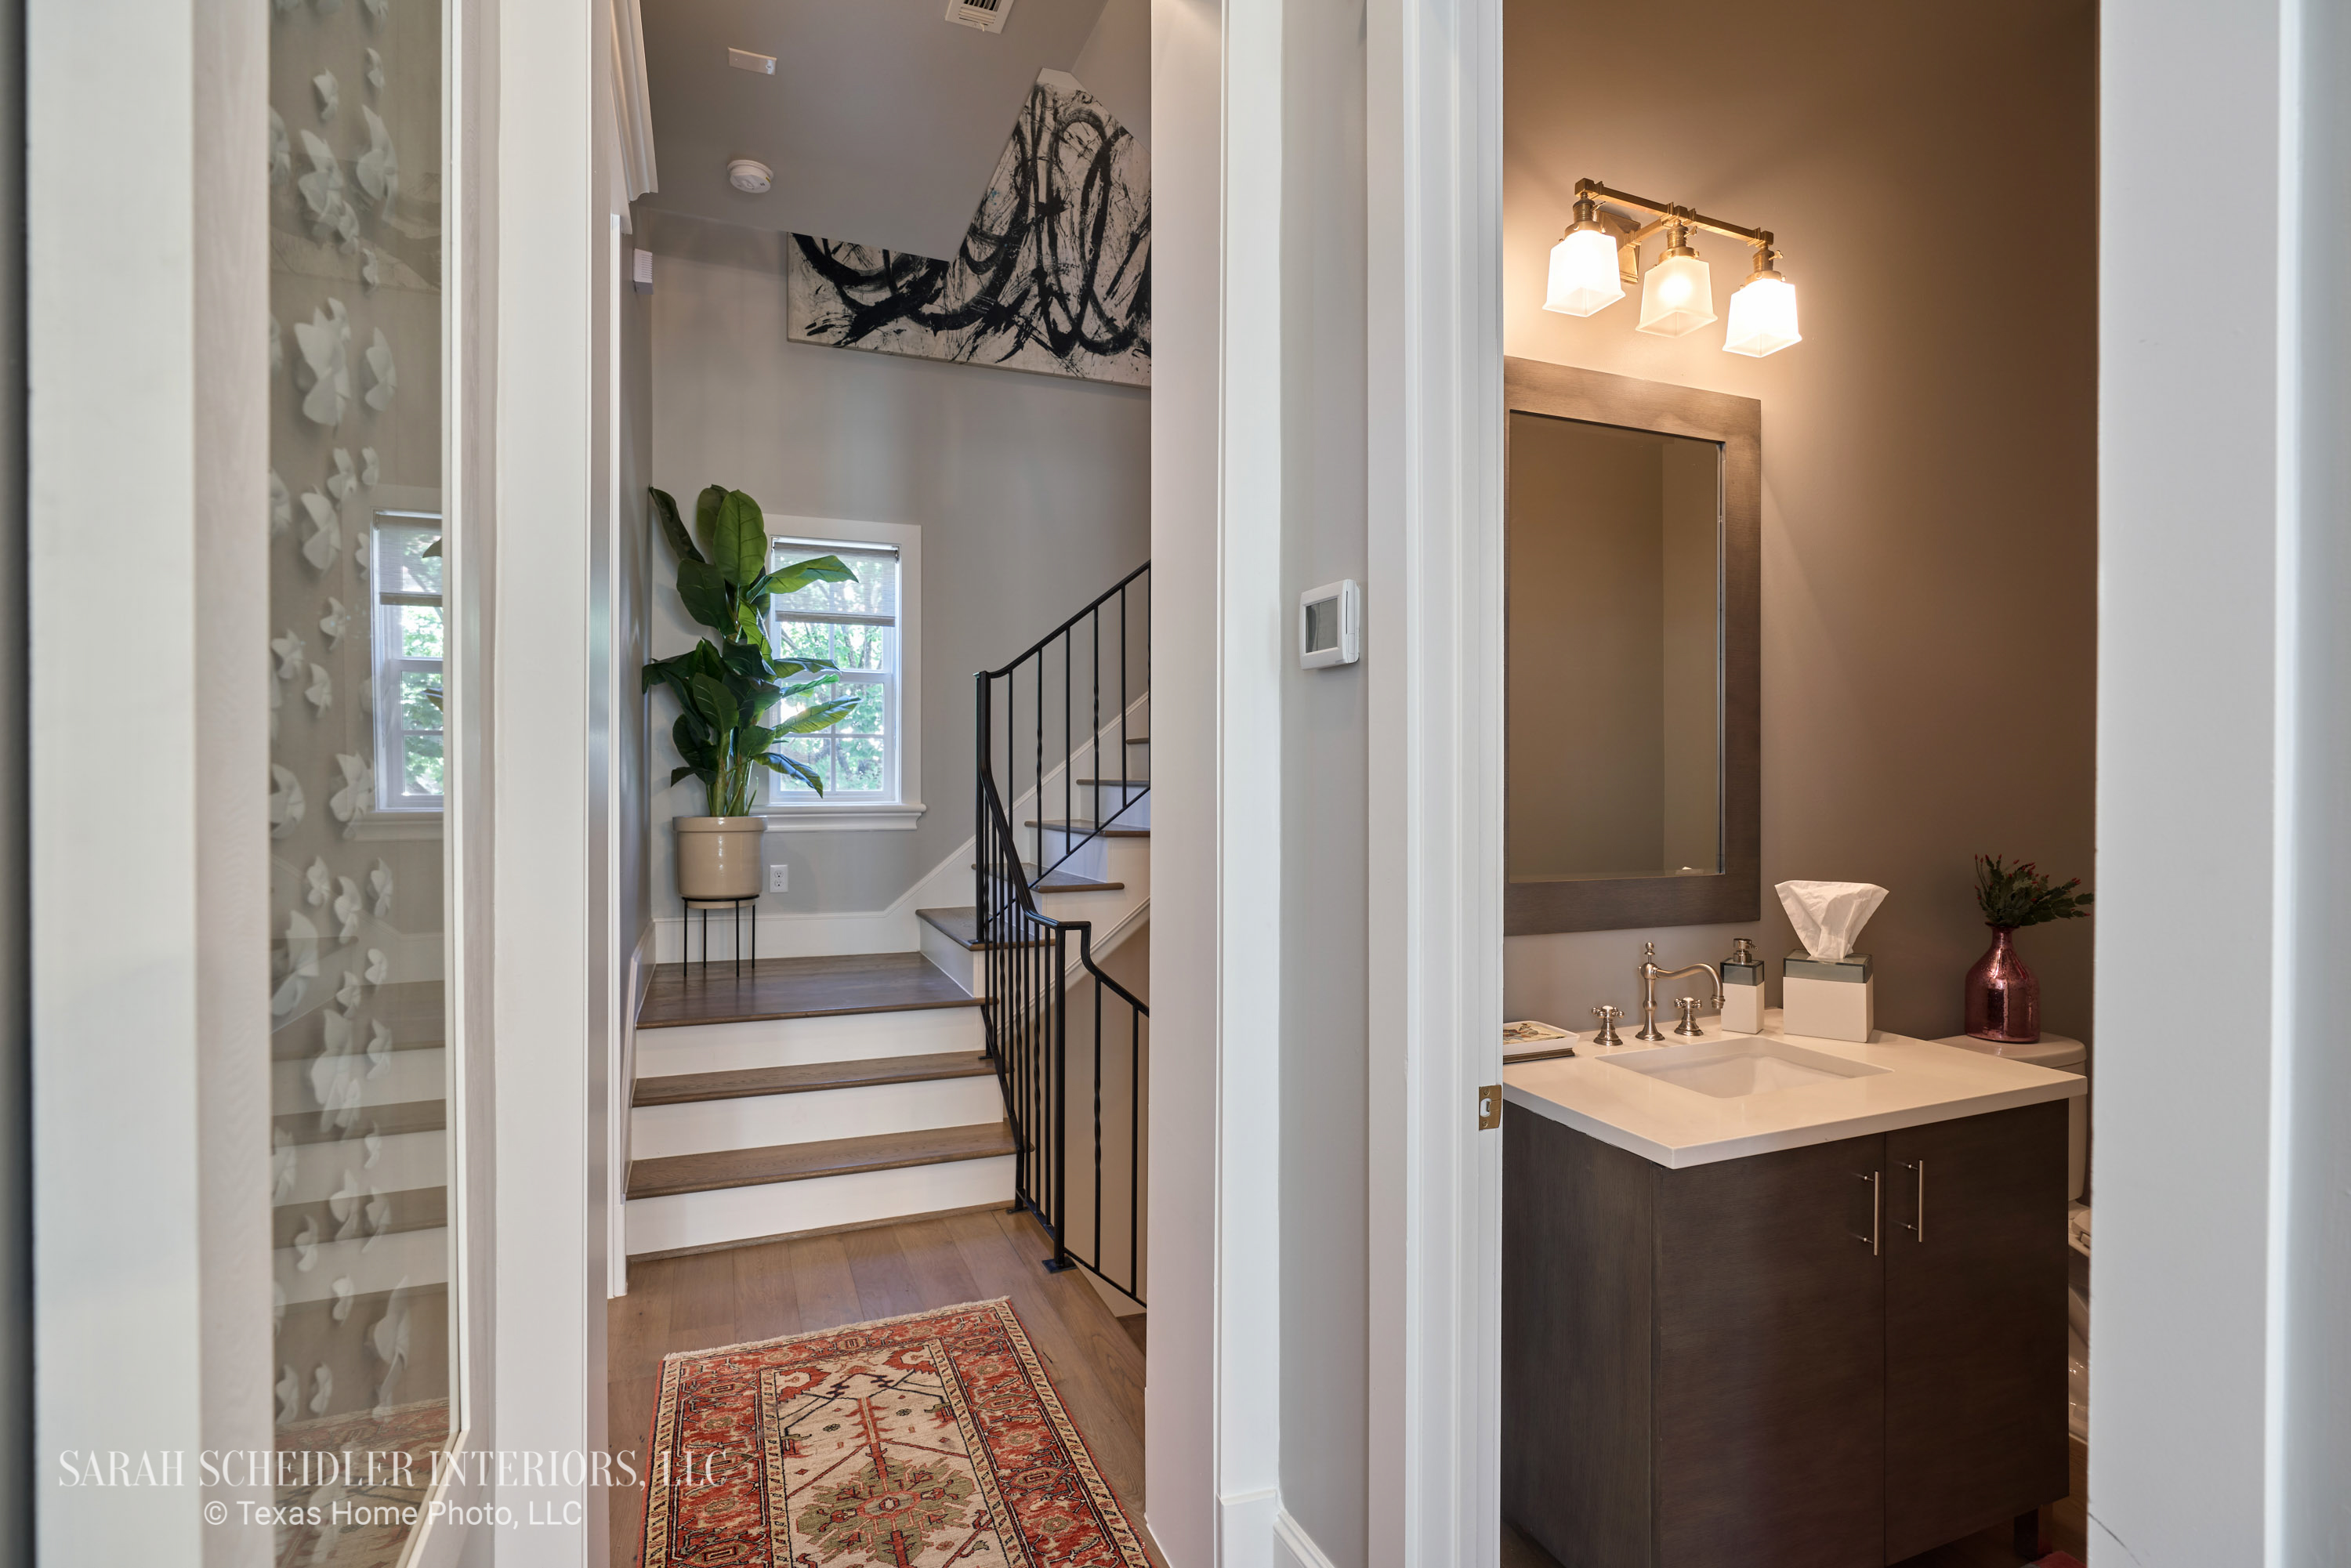 Hallway Design with Large-Scale Art, Colorful Rug Runner, and a Peak at the Powder Bathroom